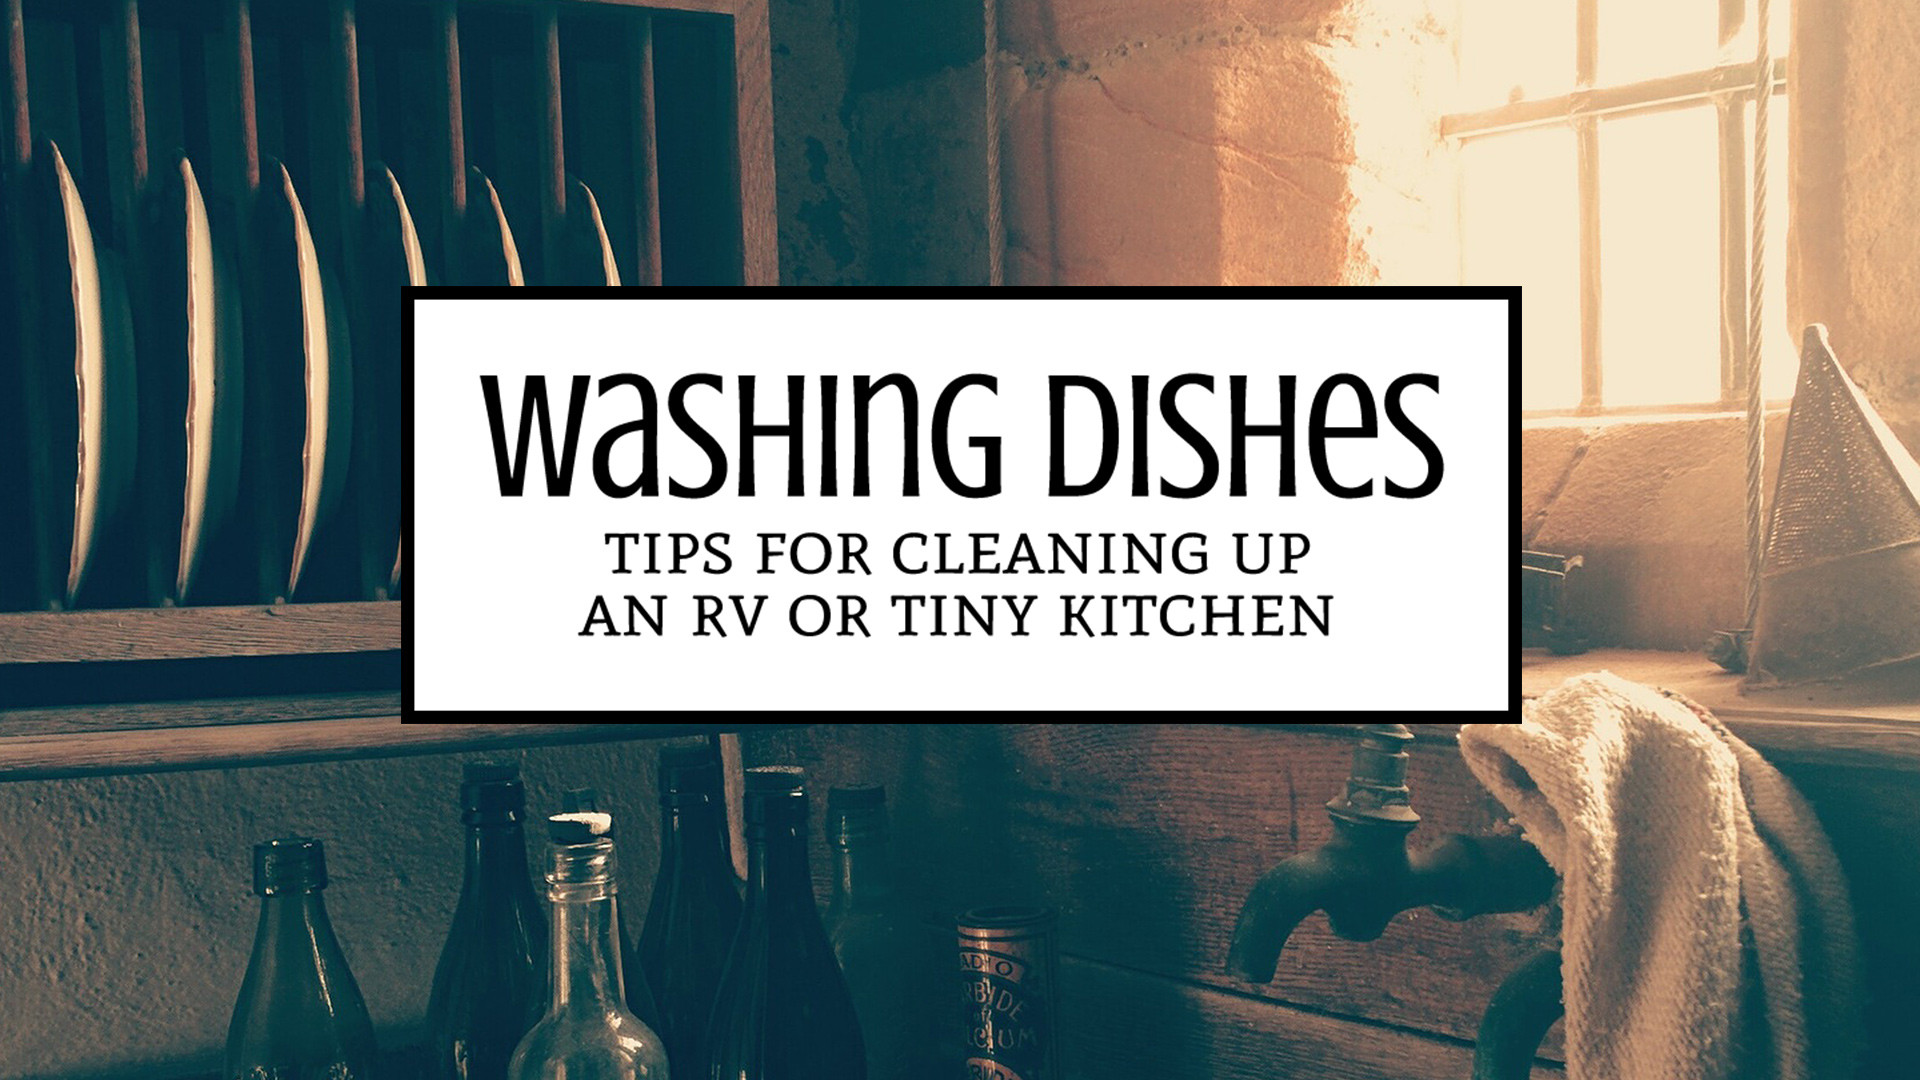 Washing Dishes in Your RV or Tiny Kitchen: Tips to help you boondock longer, conserve water, extend your waste tanks, and make a dirty chore a little easier. | Tiny Kitchen Cuisine | https://tiny.kitchen